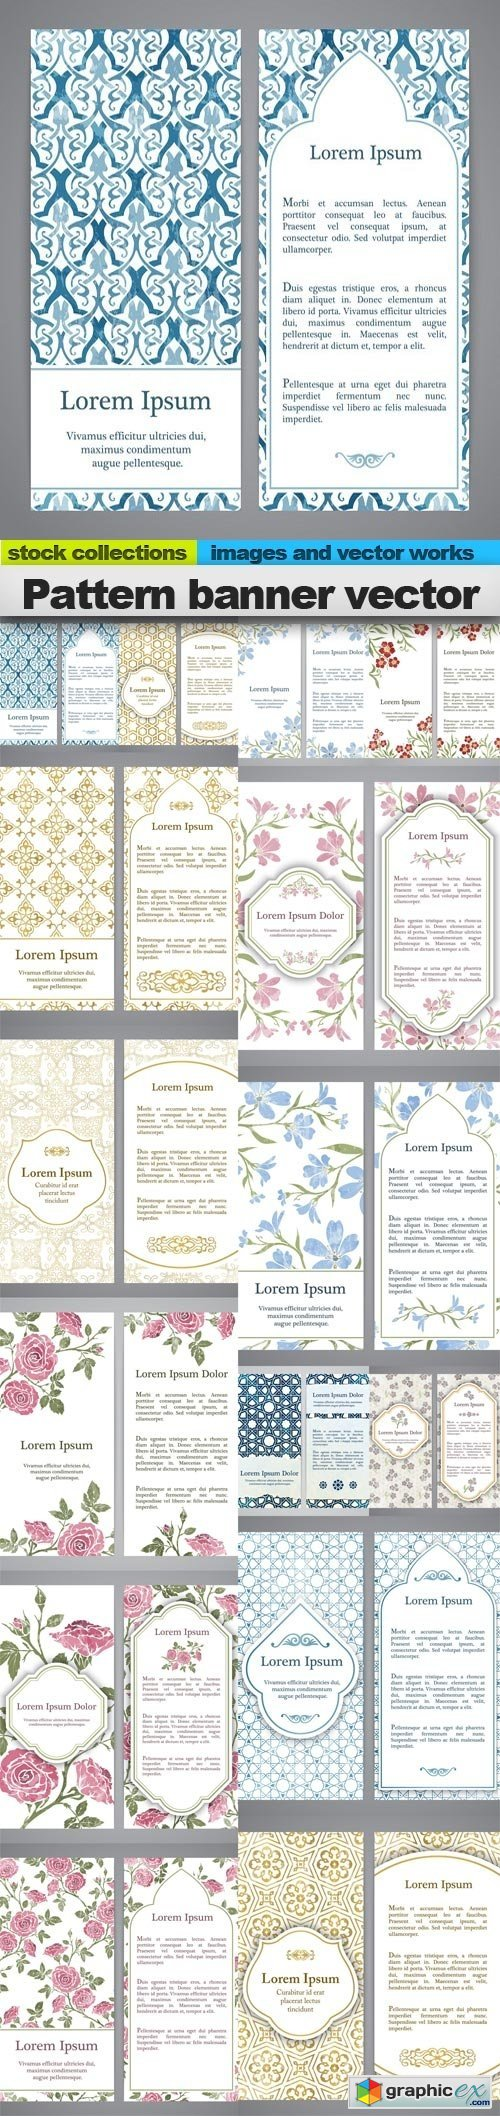 Pattern banner vector, 15 x EPS